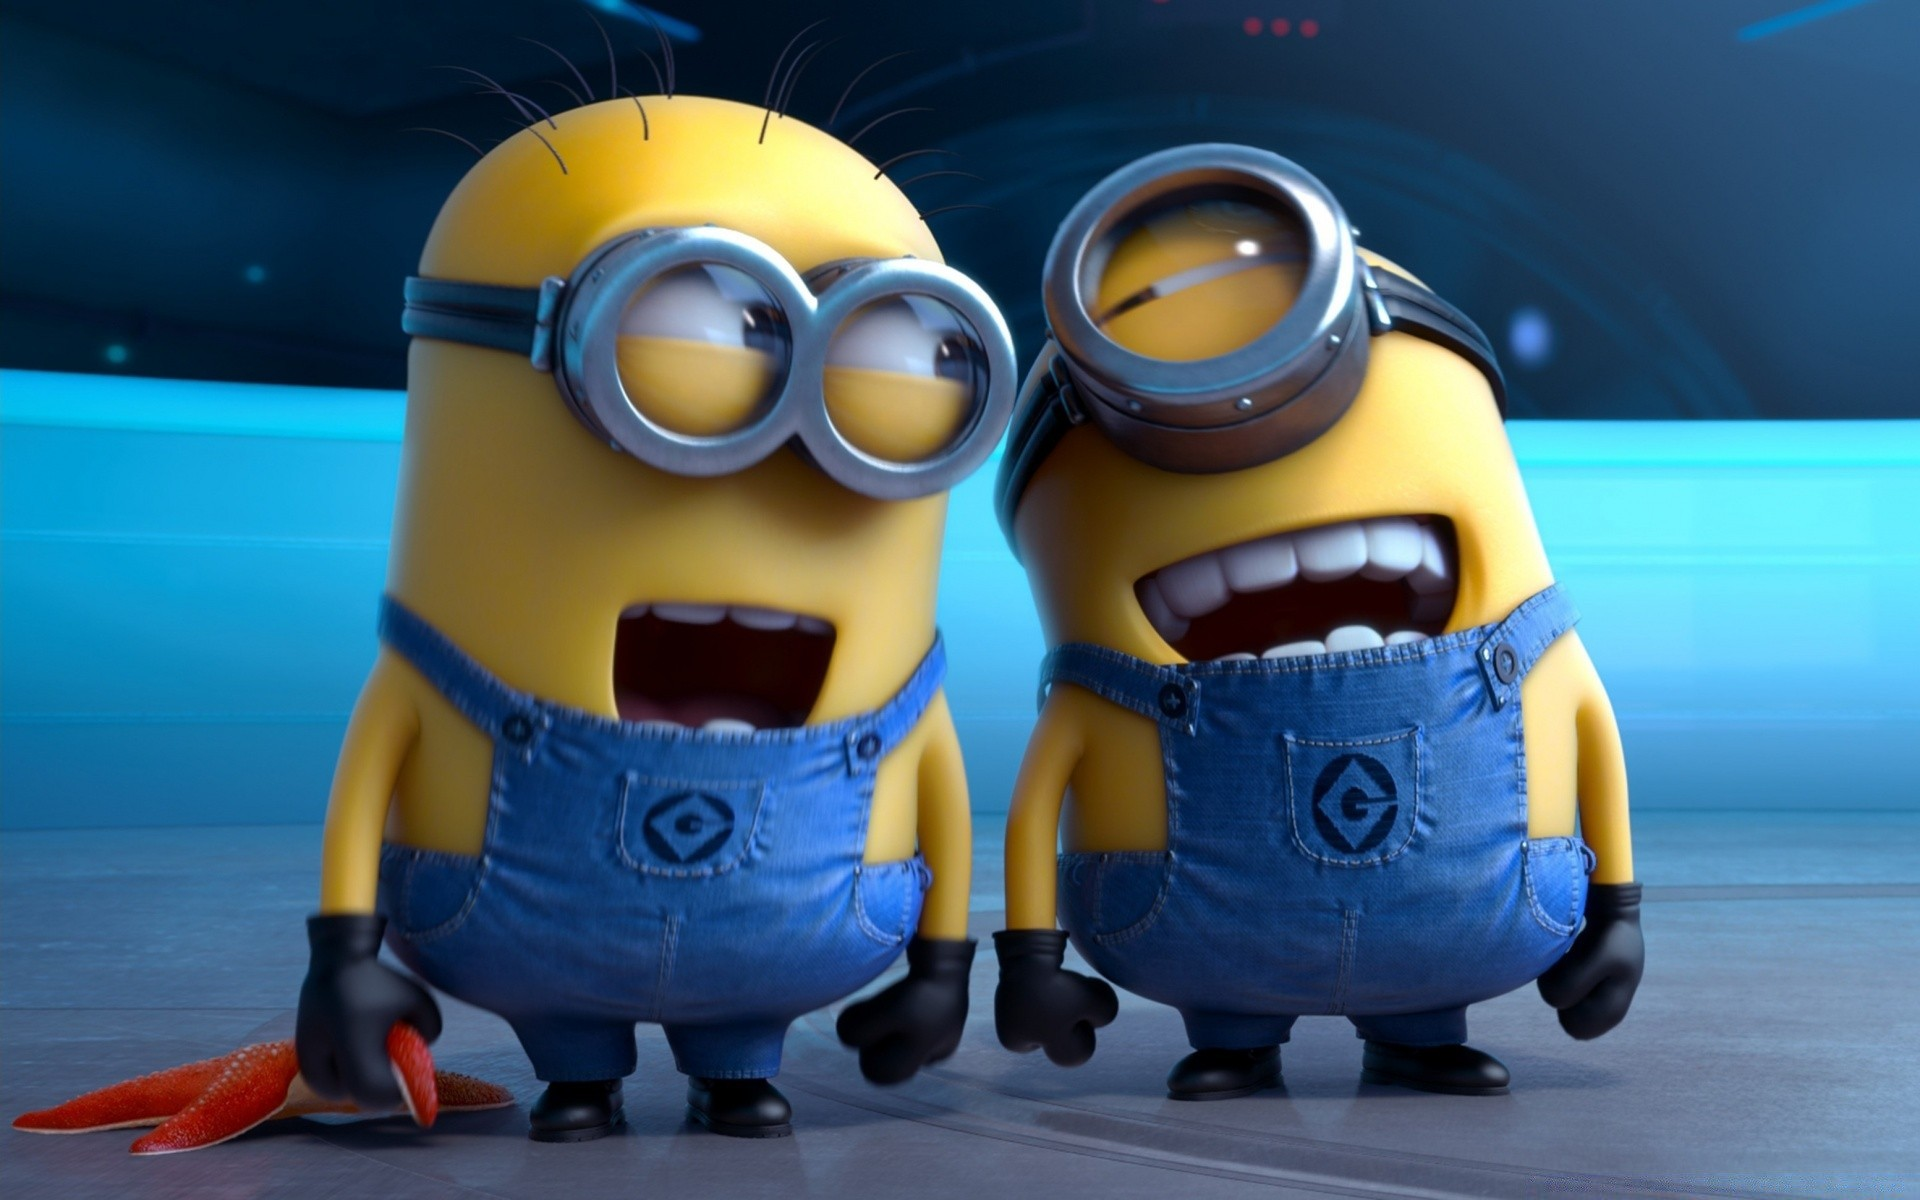 Despicable Me 2 Laughing Minions Android Wallpapers